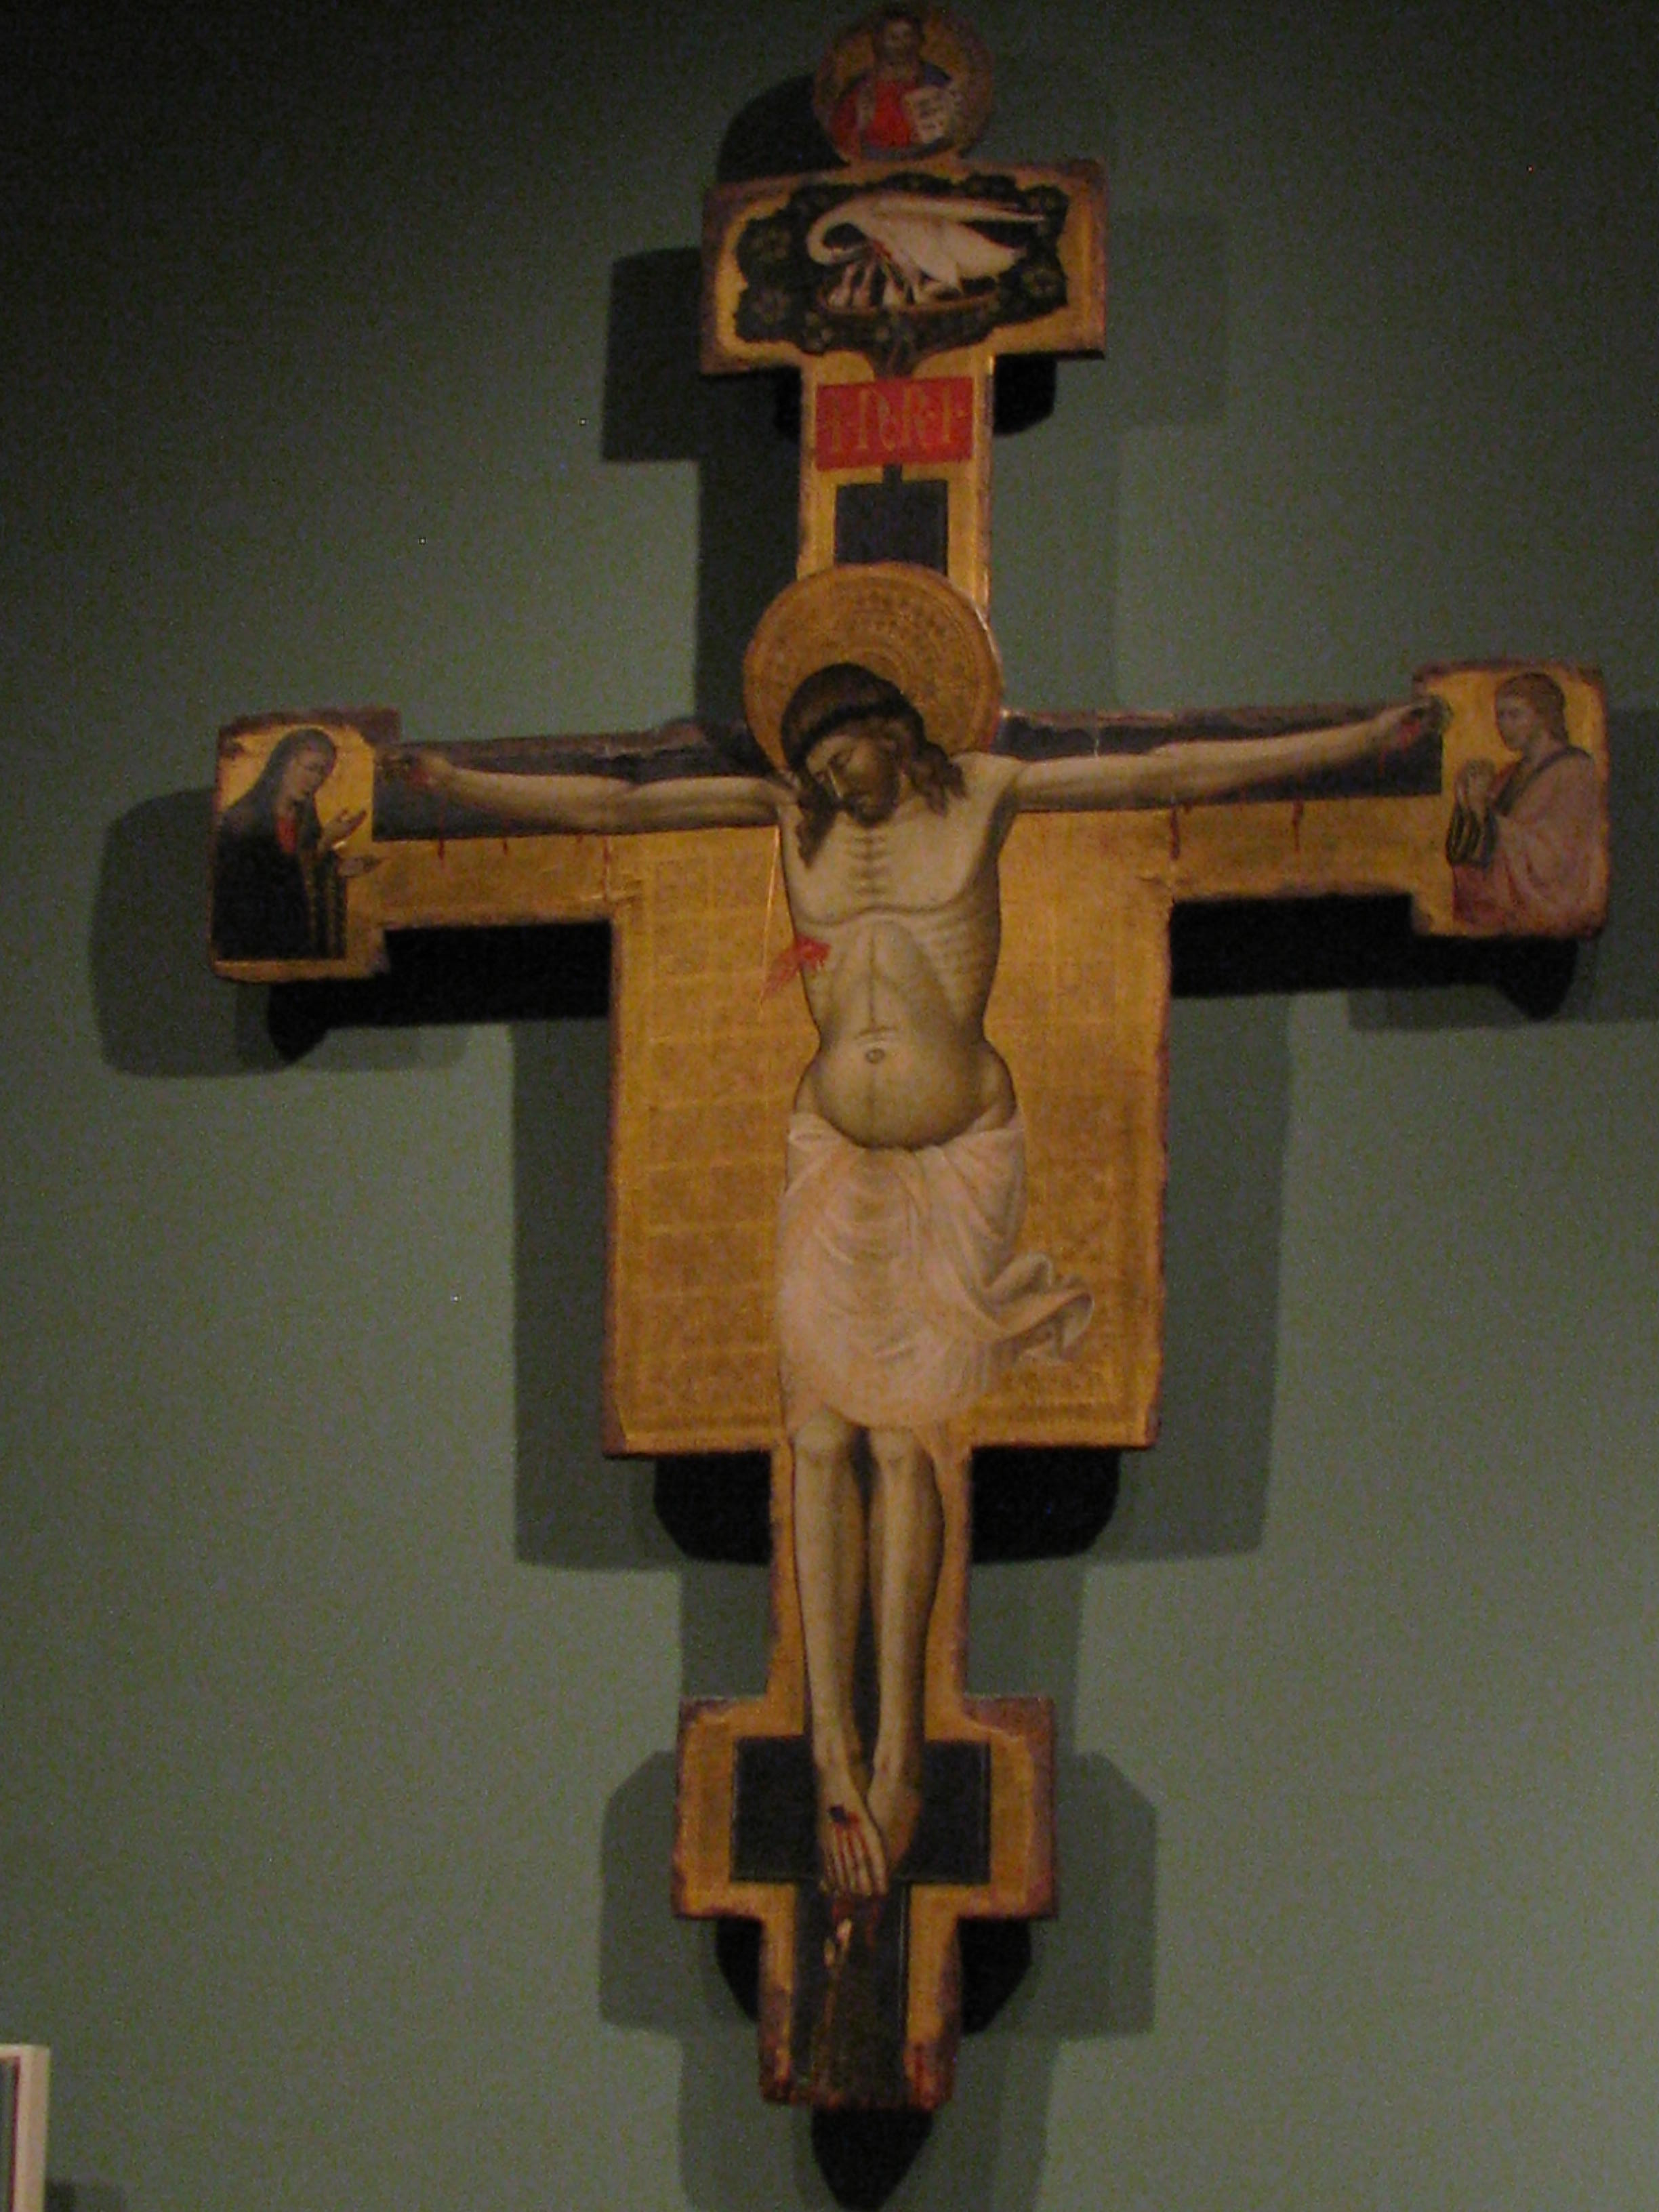 Sacred symbols the pelican mandorlas in our midst painted crucifix 14th century italian st louis art museum st louis biocorpaavc Choice Image